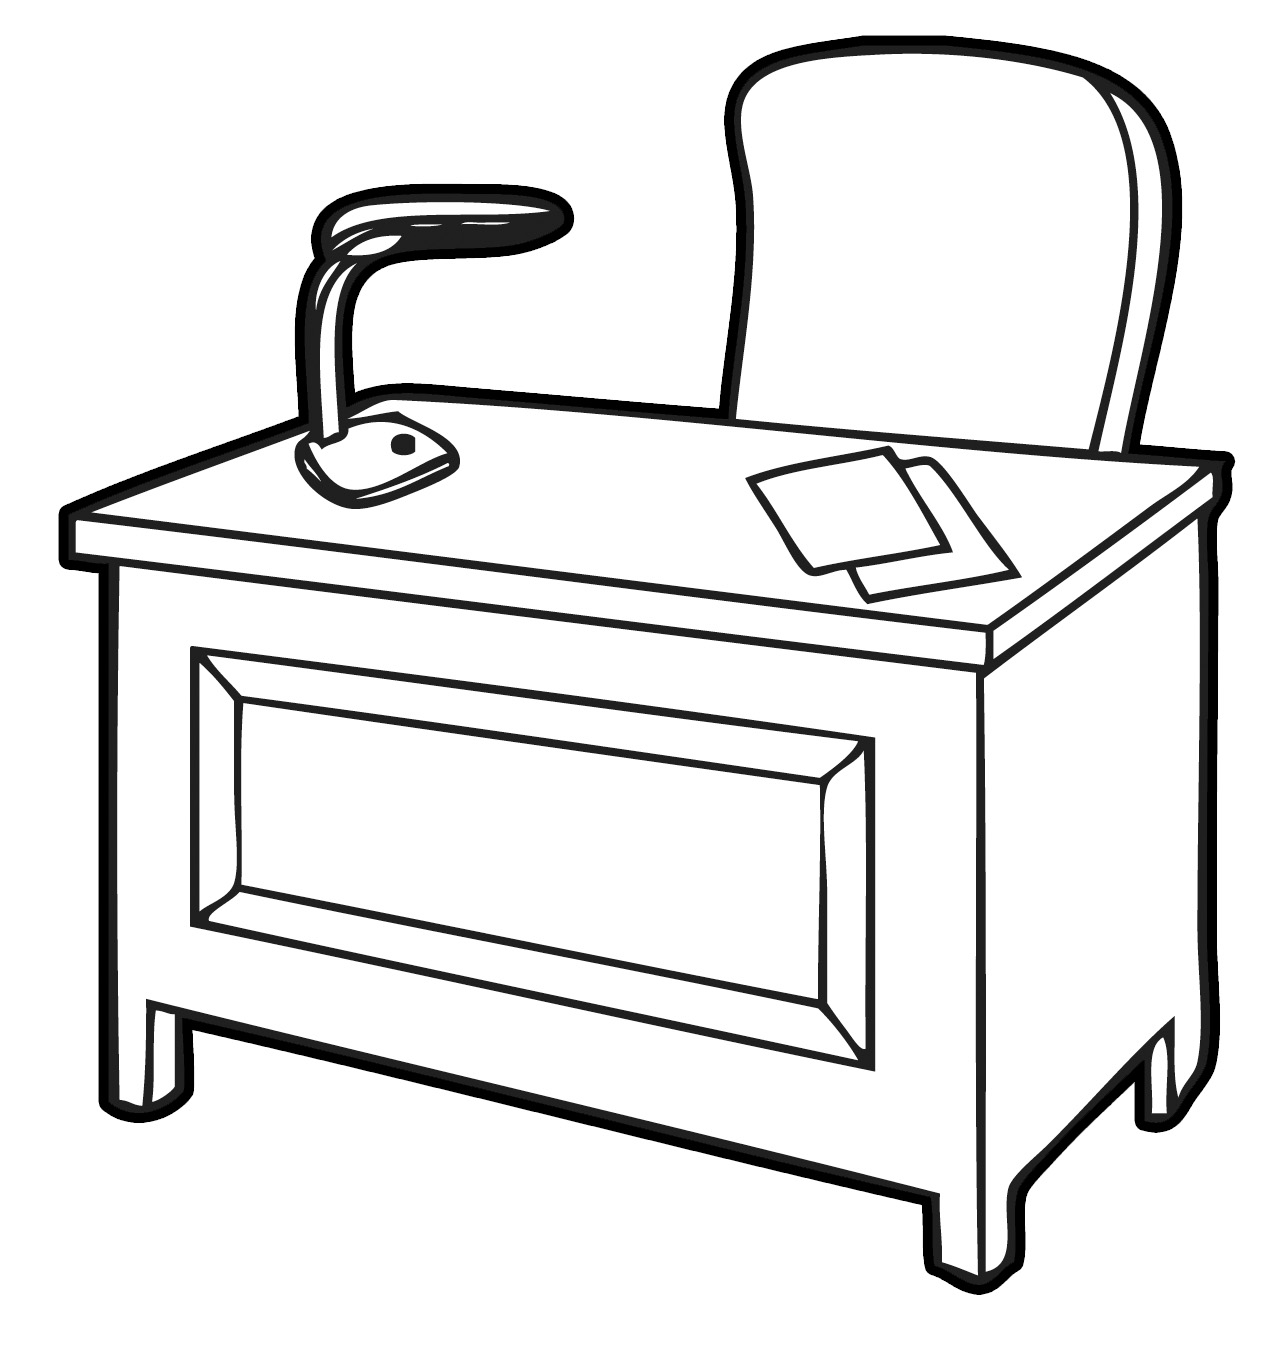 Table Clip Art Black And White   Clipart Panda   Free Clipart Images